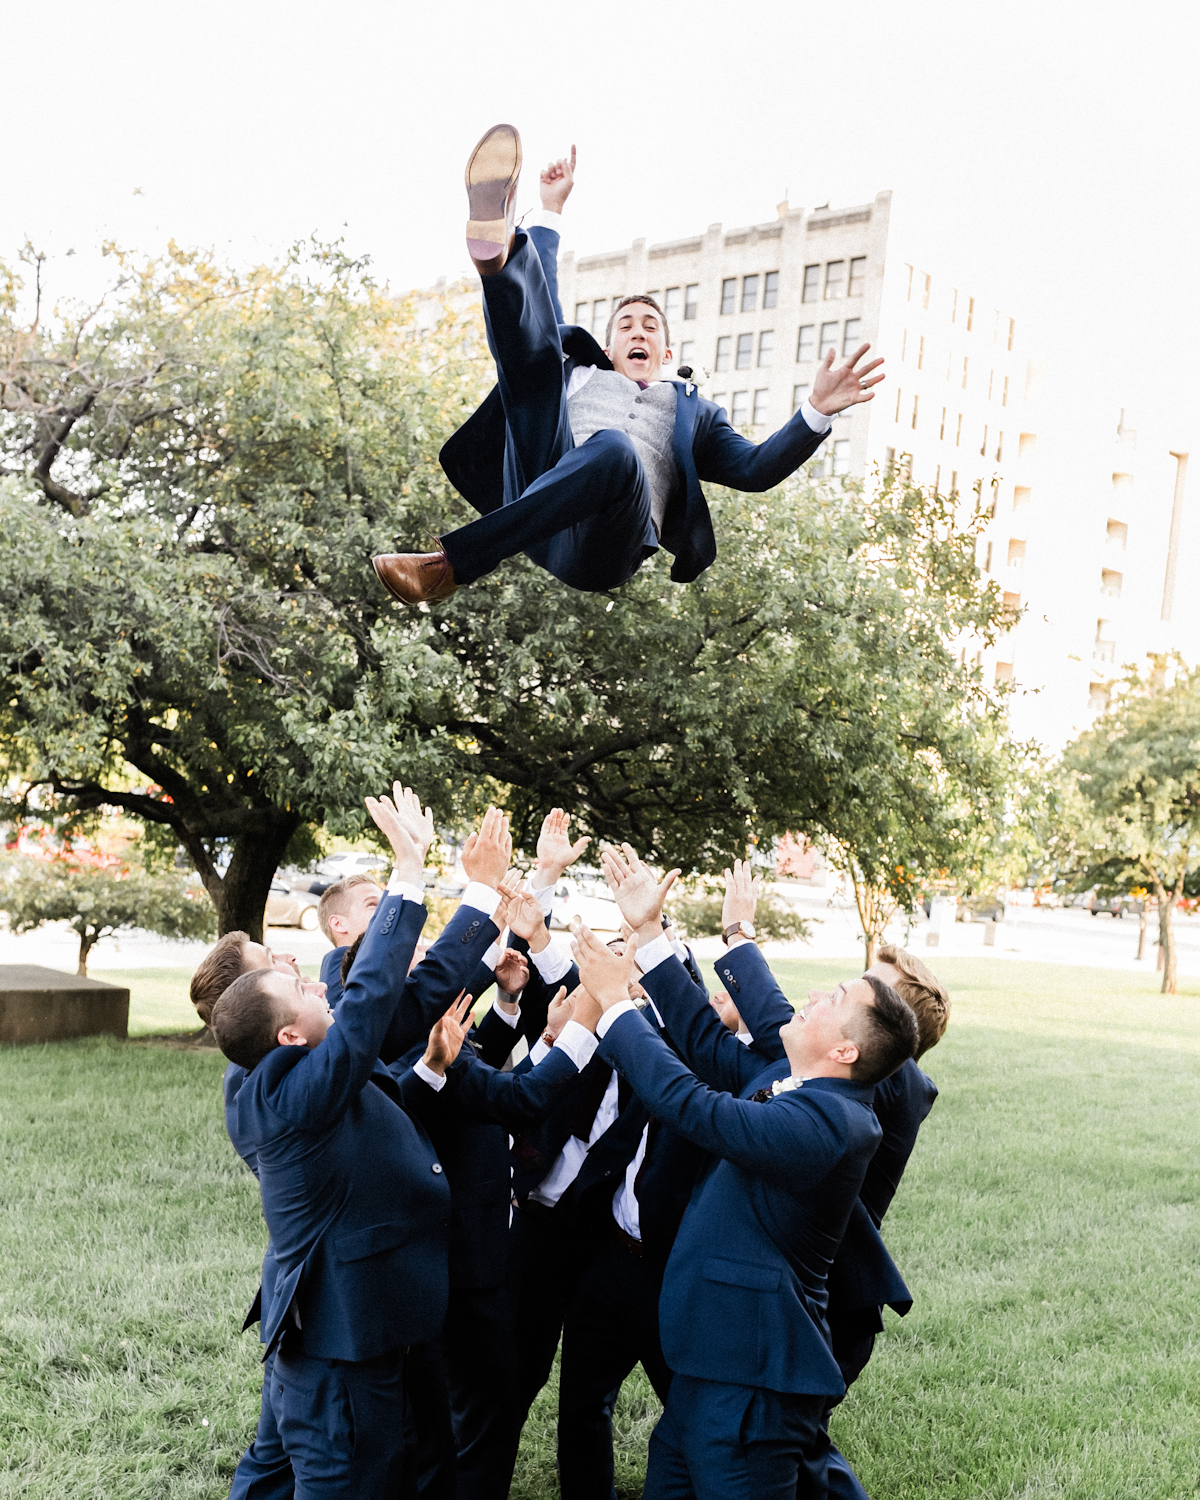 Groomsmen toss Groom in the air in downtown Indianapolis, IN wedding picture.